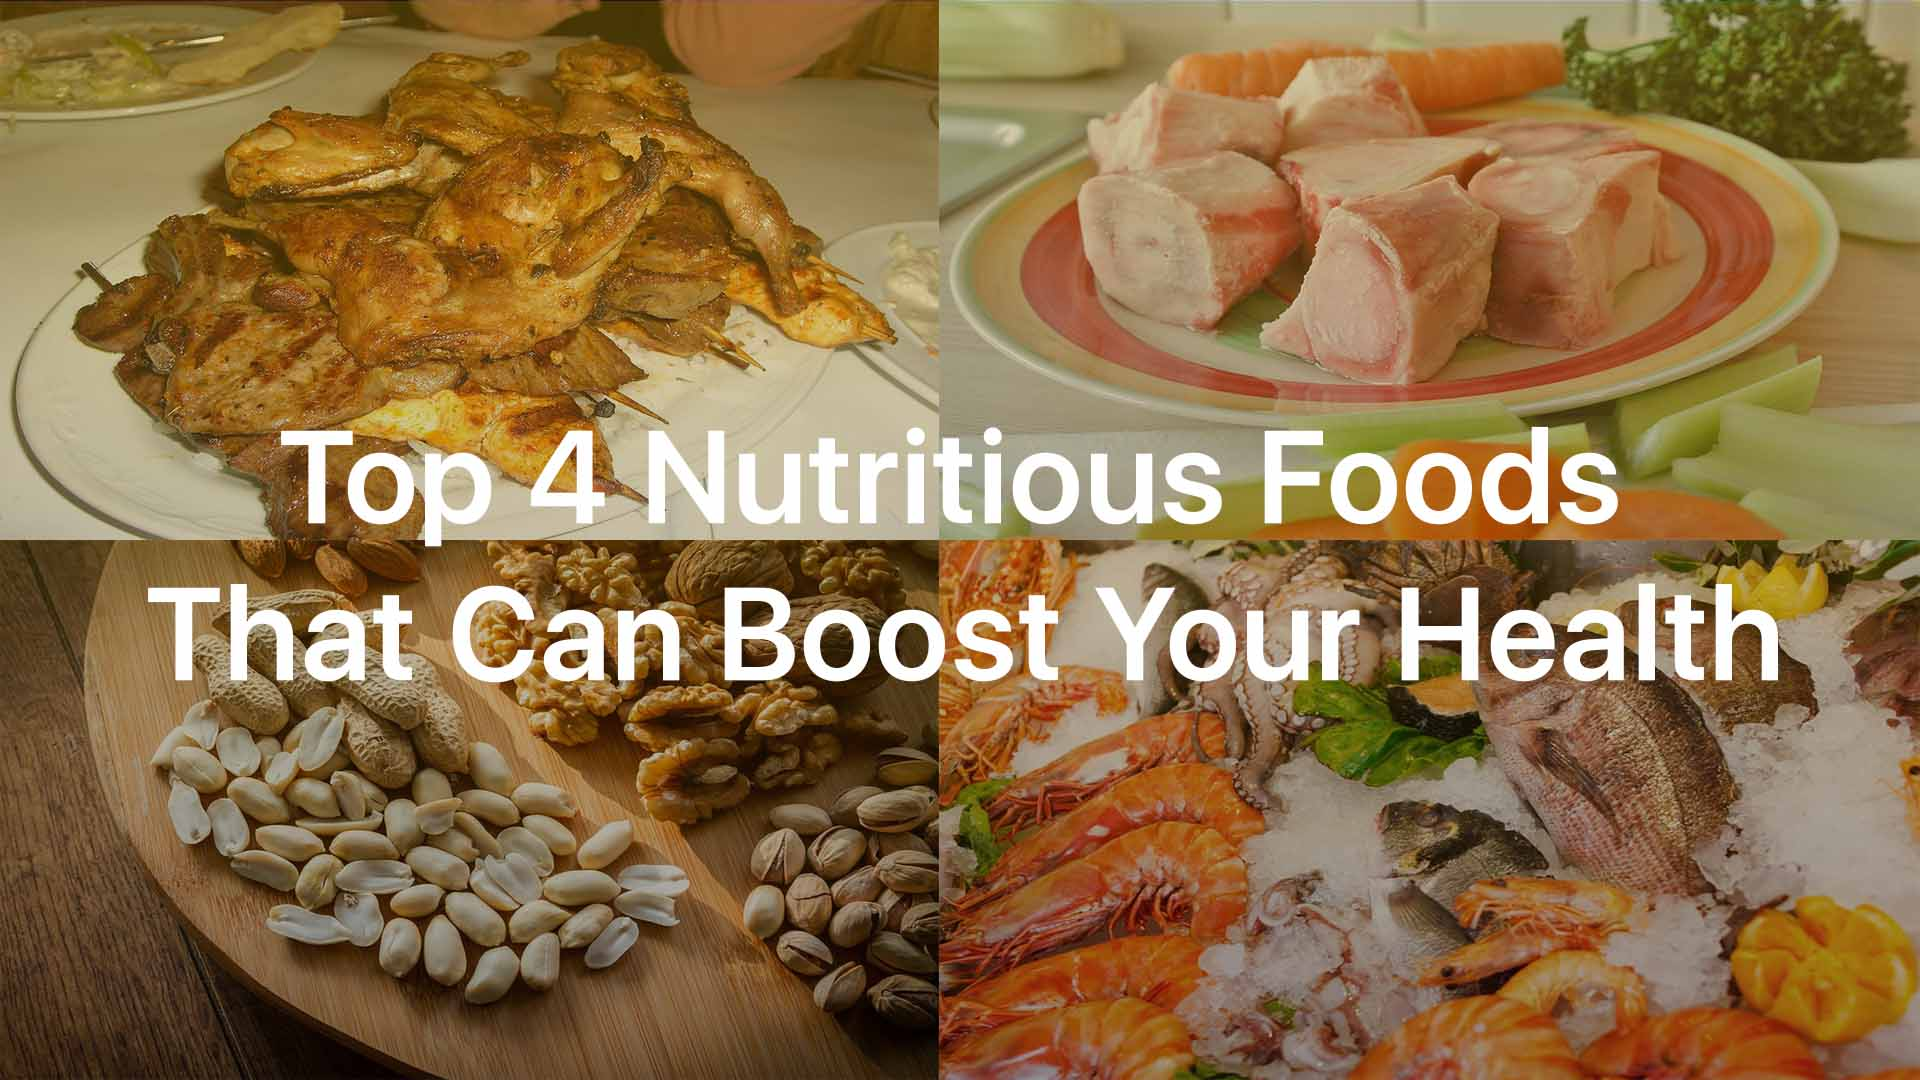 Top 4 Nutritious Foods That Can Boost Your Health